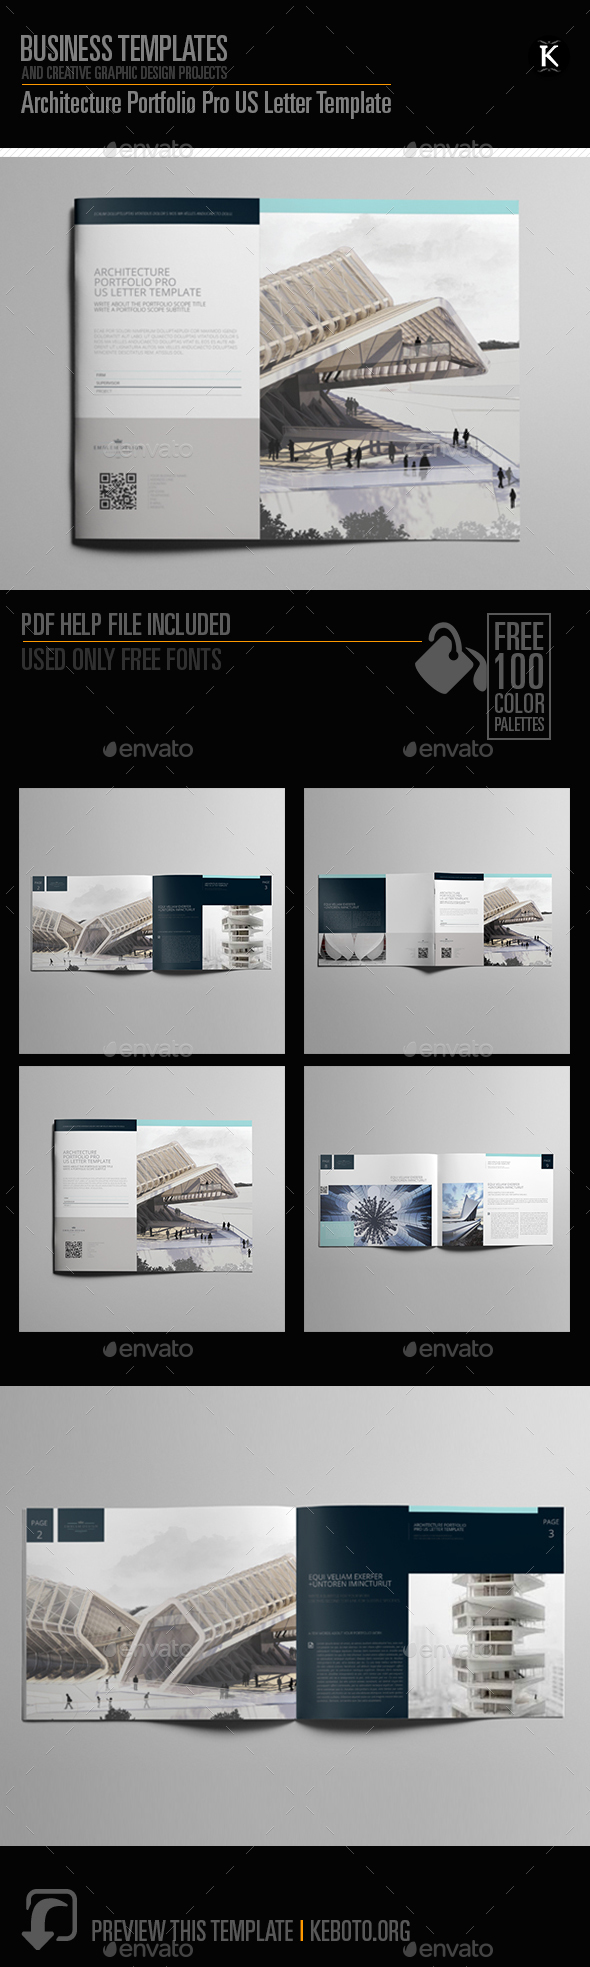 architecture portfolio pro us letter template by keboto graphicriver. Black Bedroom Furniture Sets. Home Design Ideas